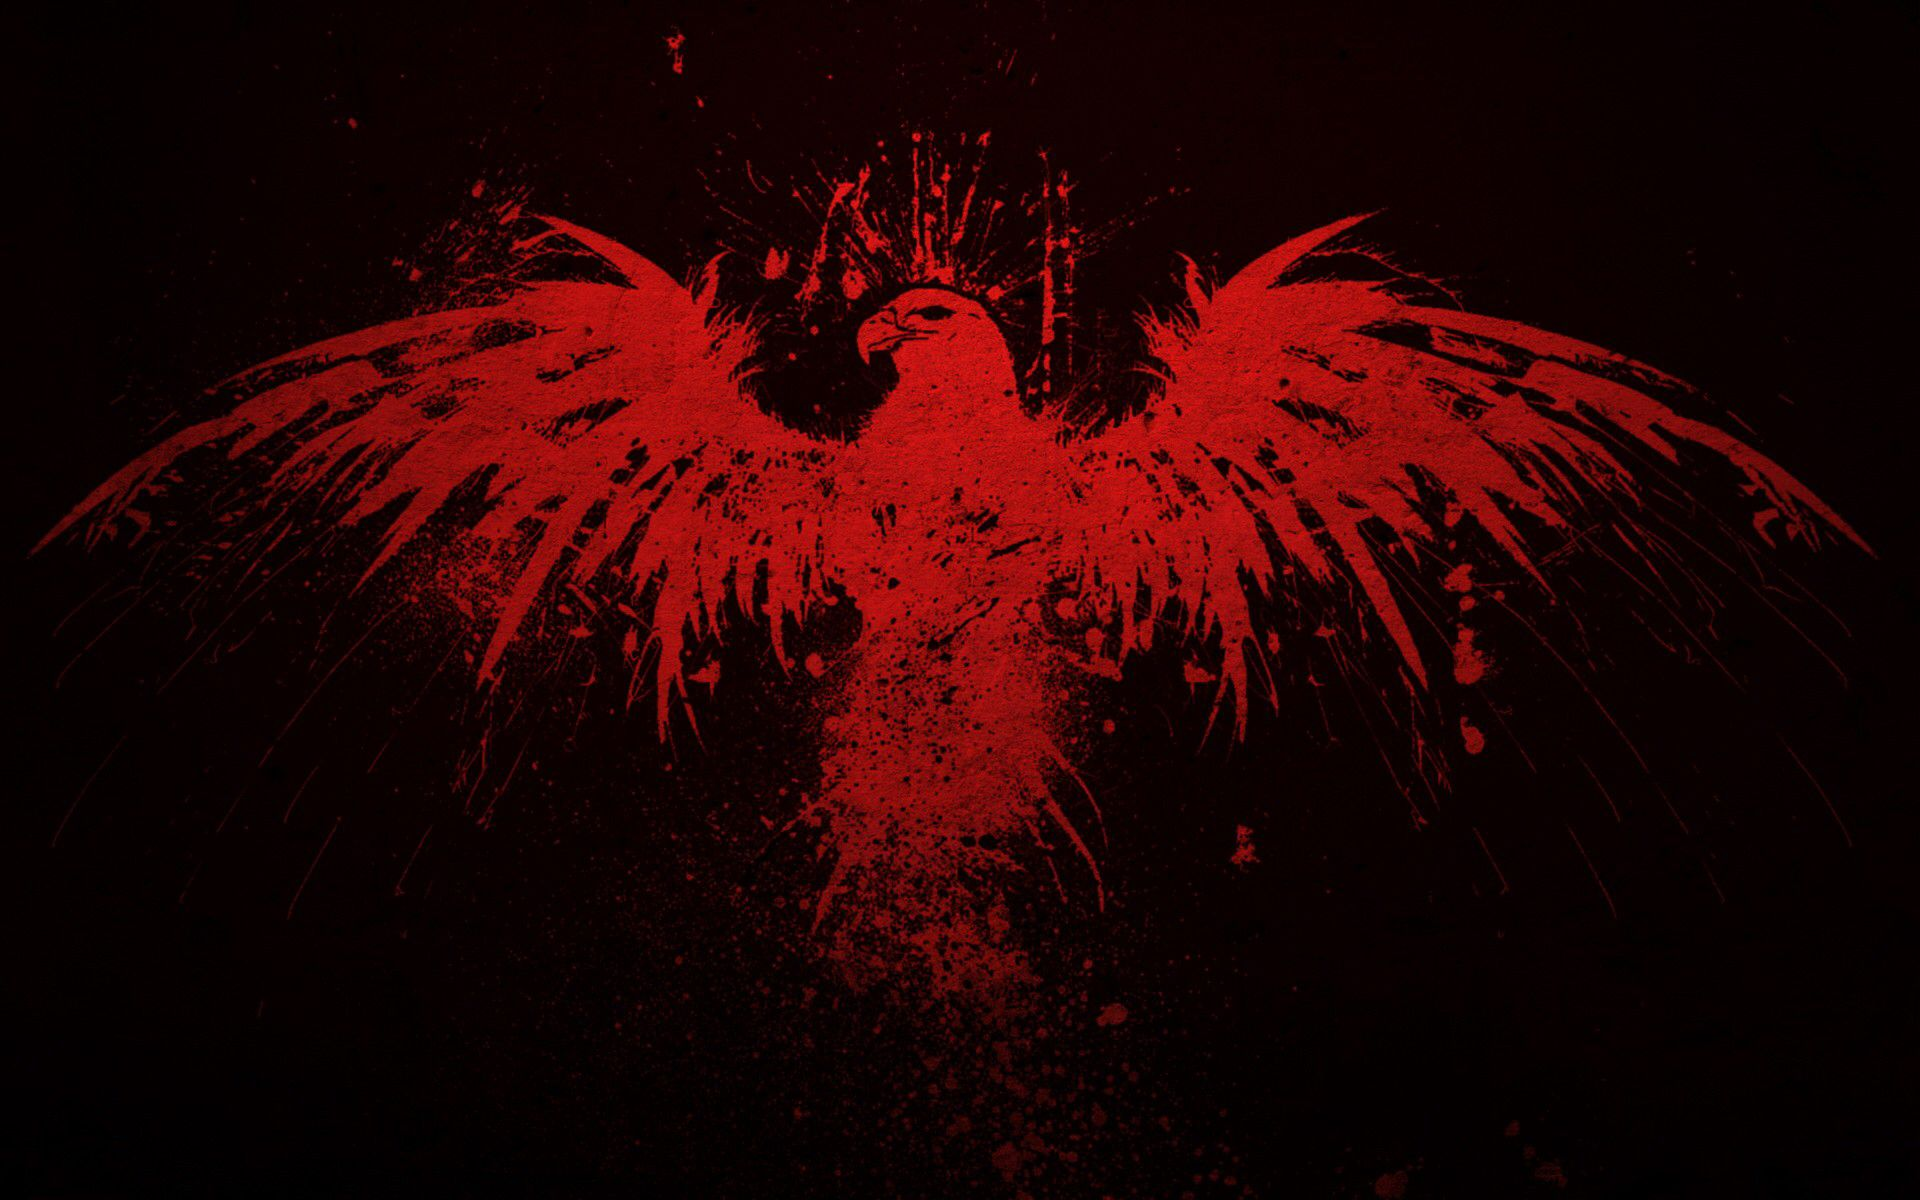 Image From Http Static2 Wallpedes Com Wallpaper Red Red Wallpaper Art Findorget Red Eagle Wallpaper Hd Uk For Wal Red Wallpaper Eagle Wallpaper Art Wallpaper